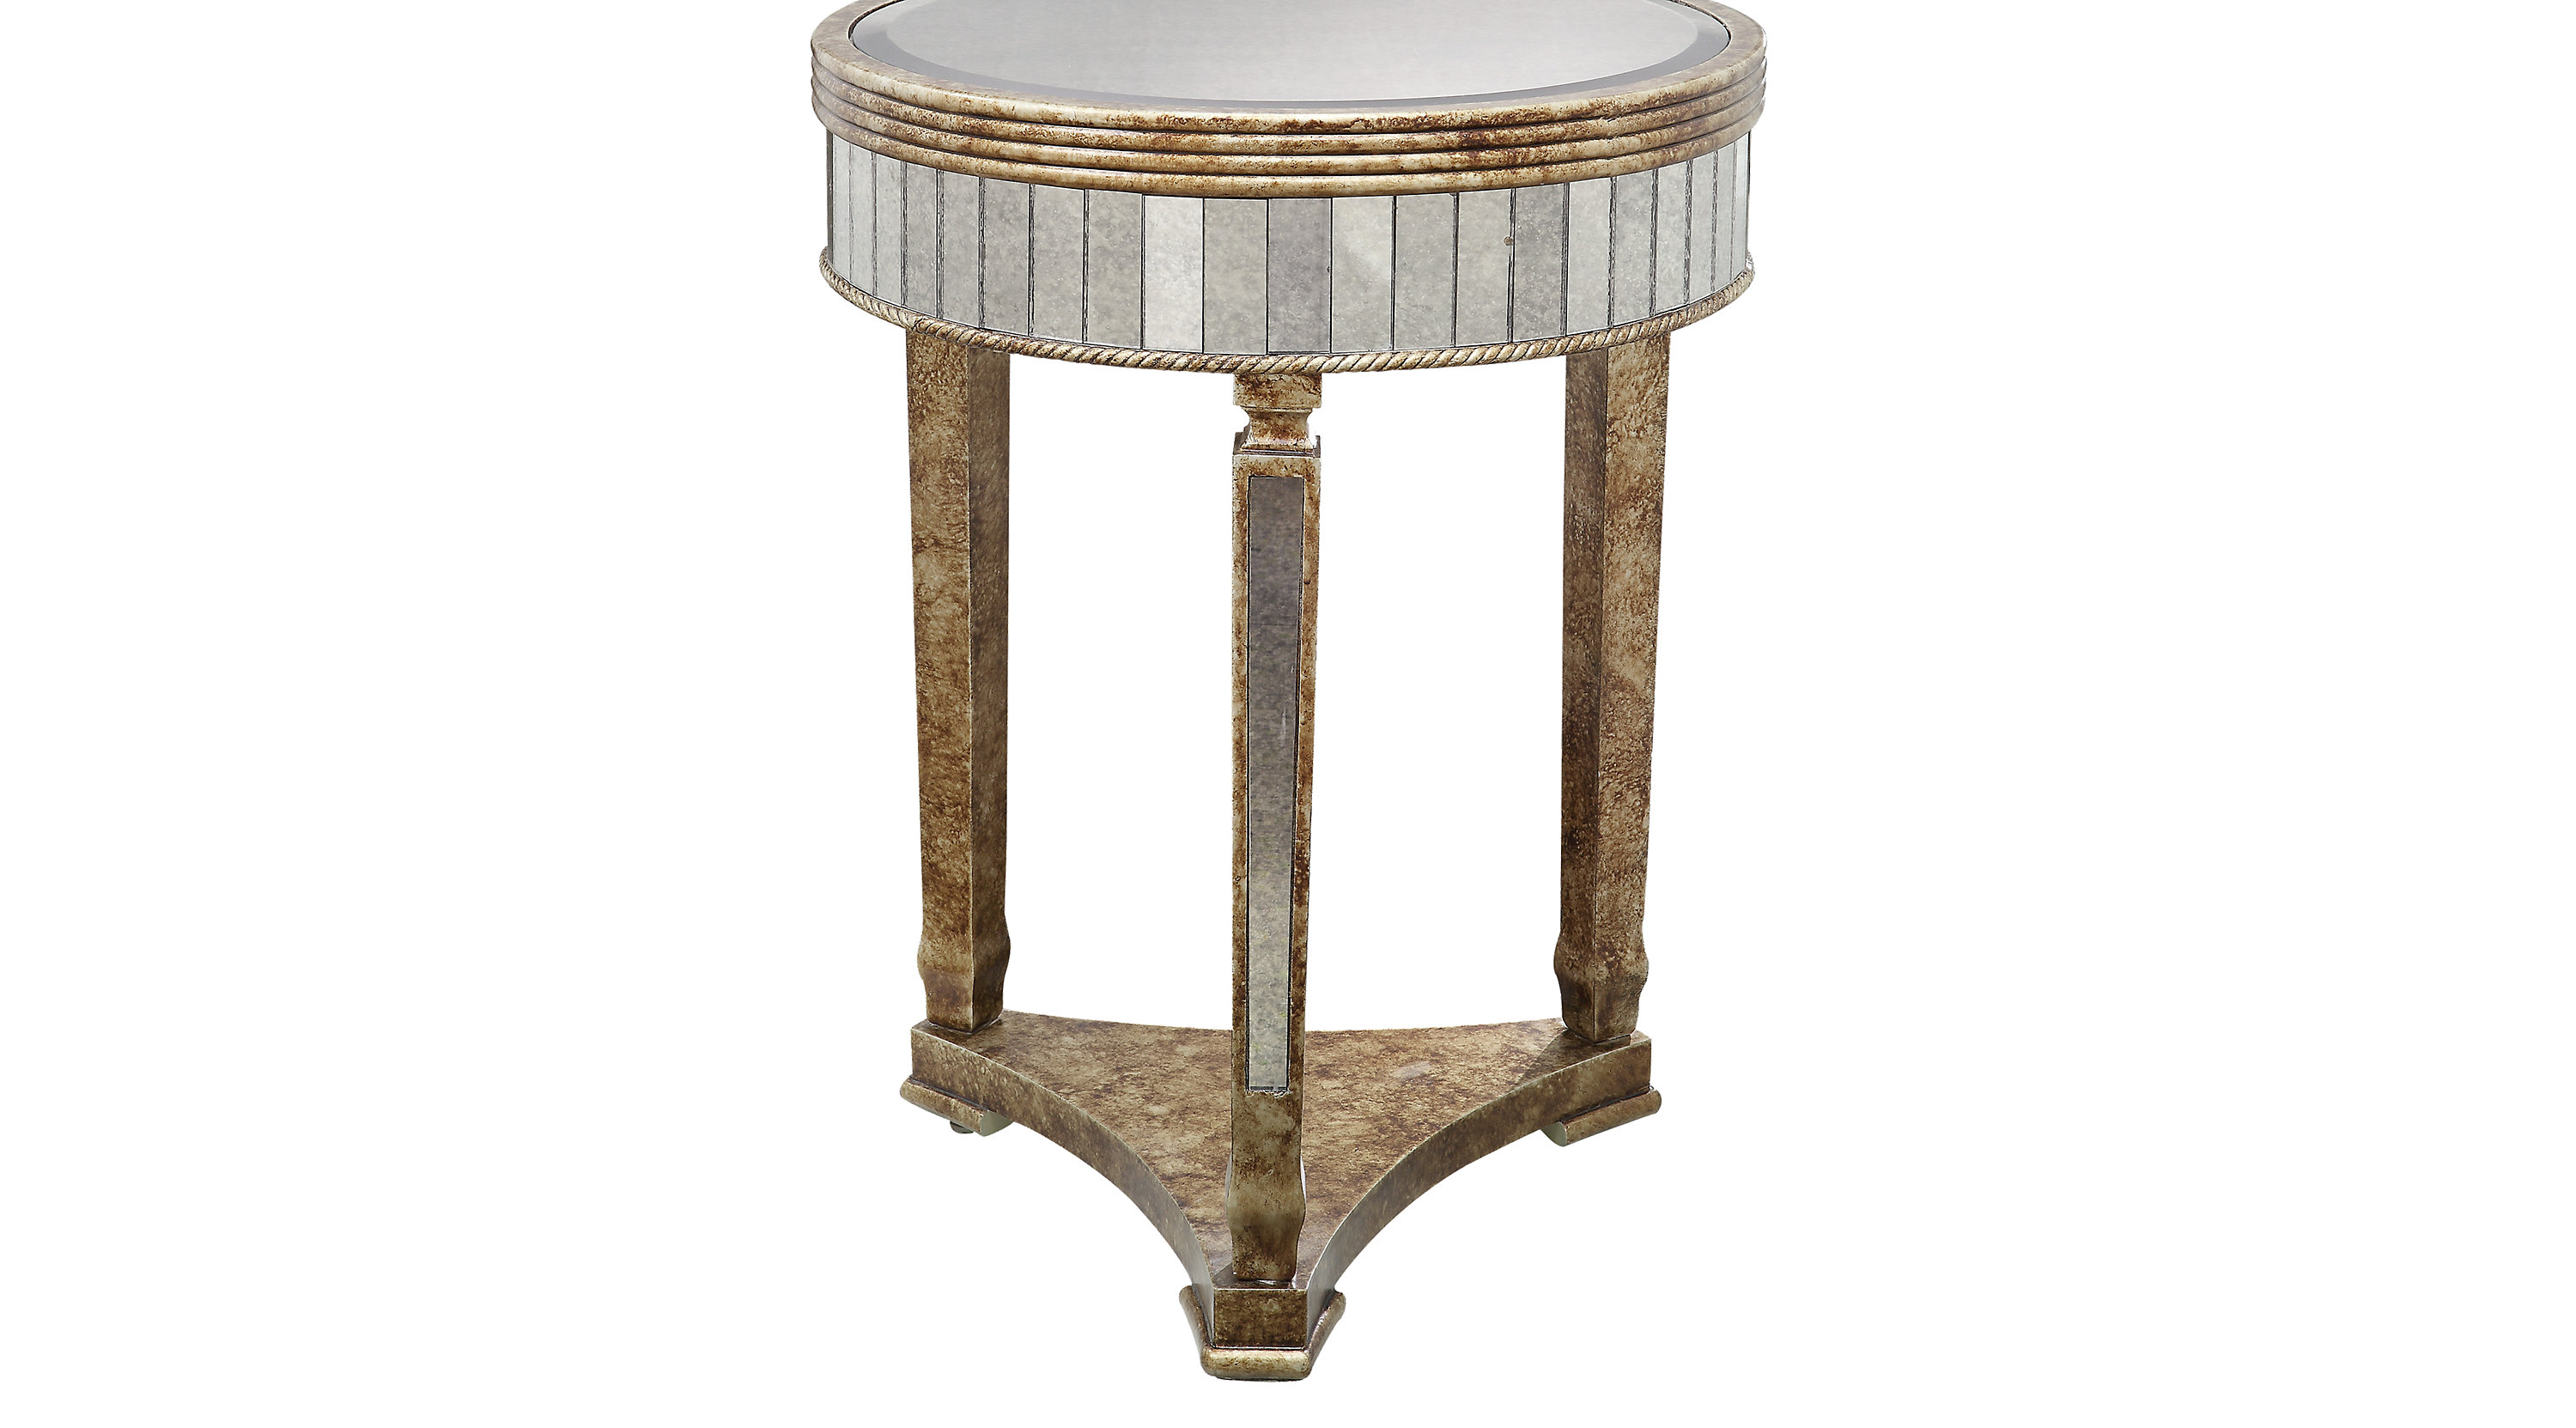 elevonne gold accent table contemporary mirrored round kitchen sets for silver trunk coffee oak lamp patio swing dark pine furniture pier outdoor cushions solid cherry weber grill